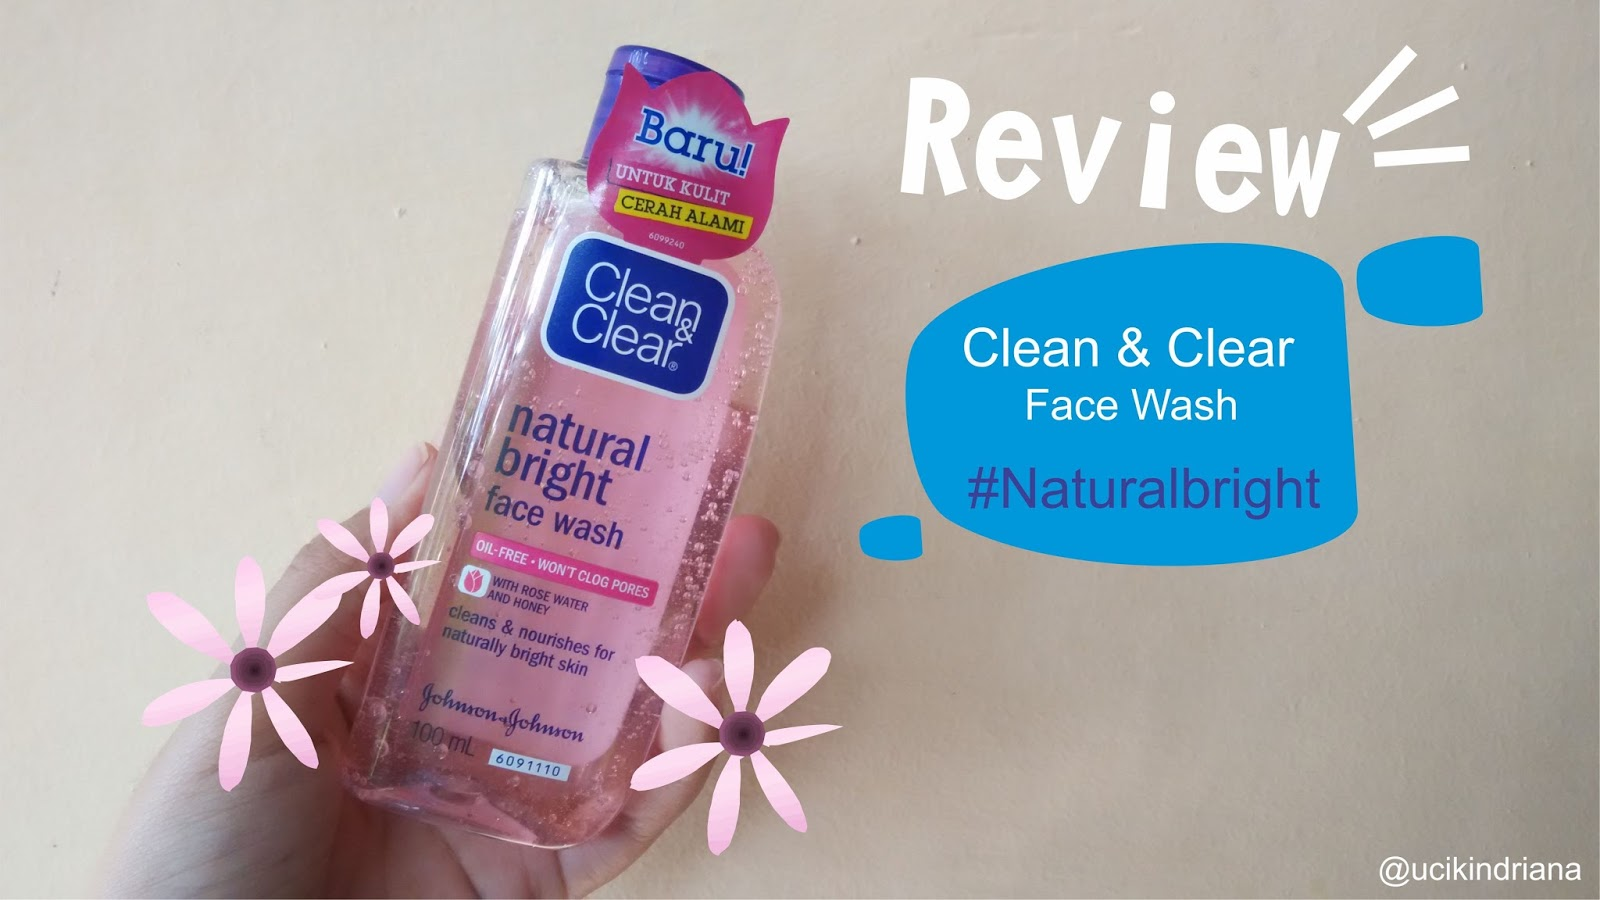 With you Review organic facial wash